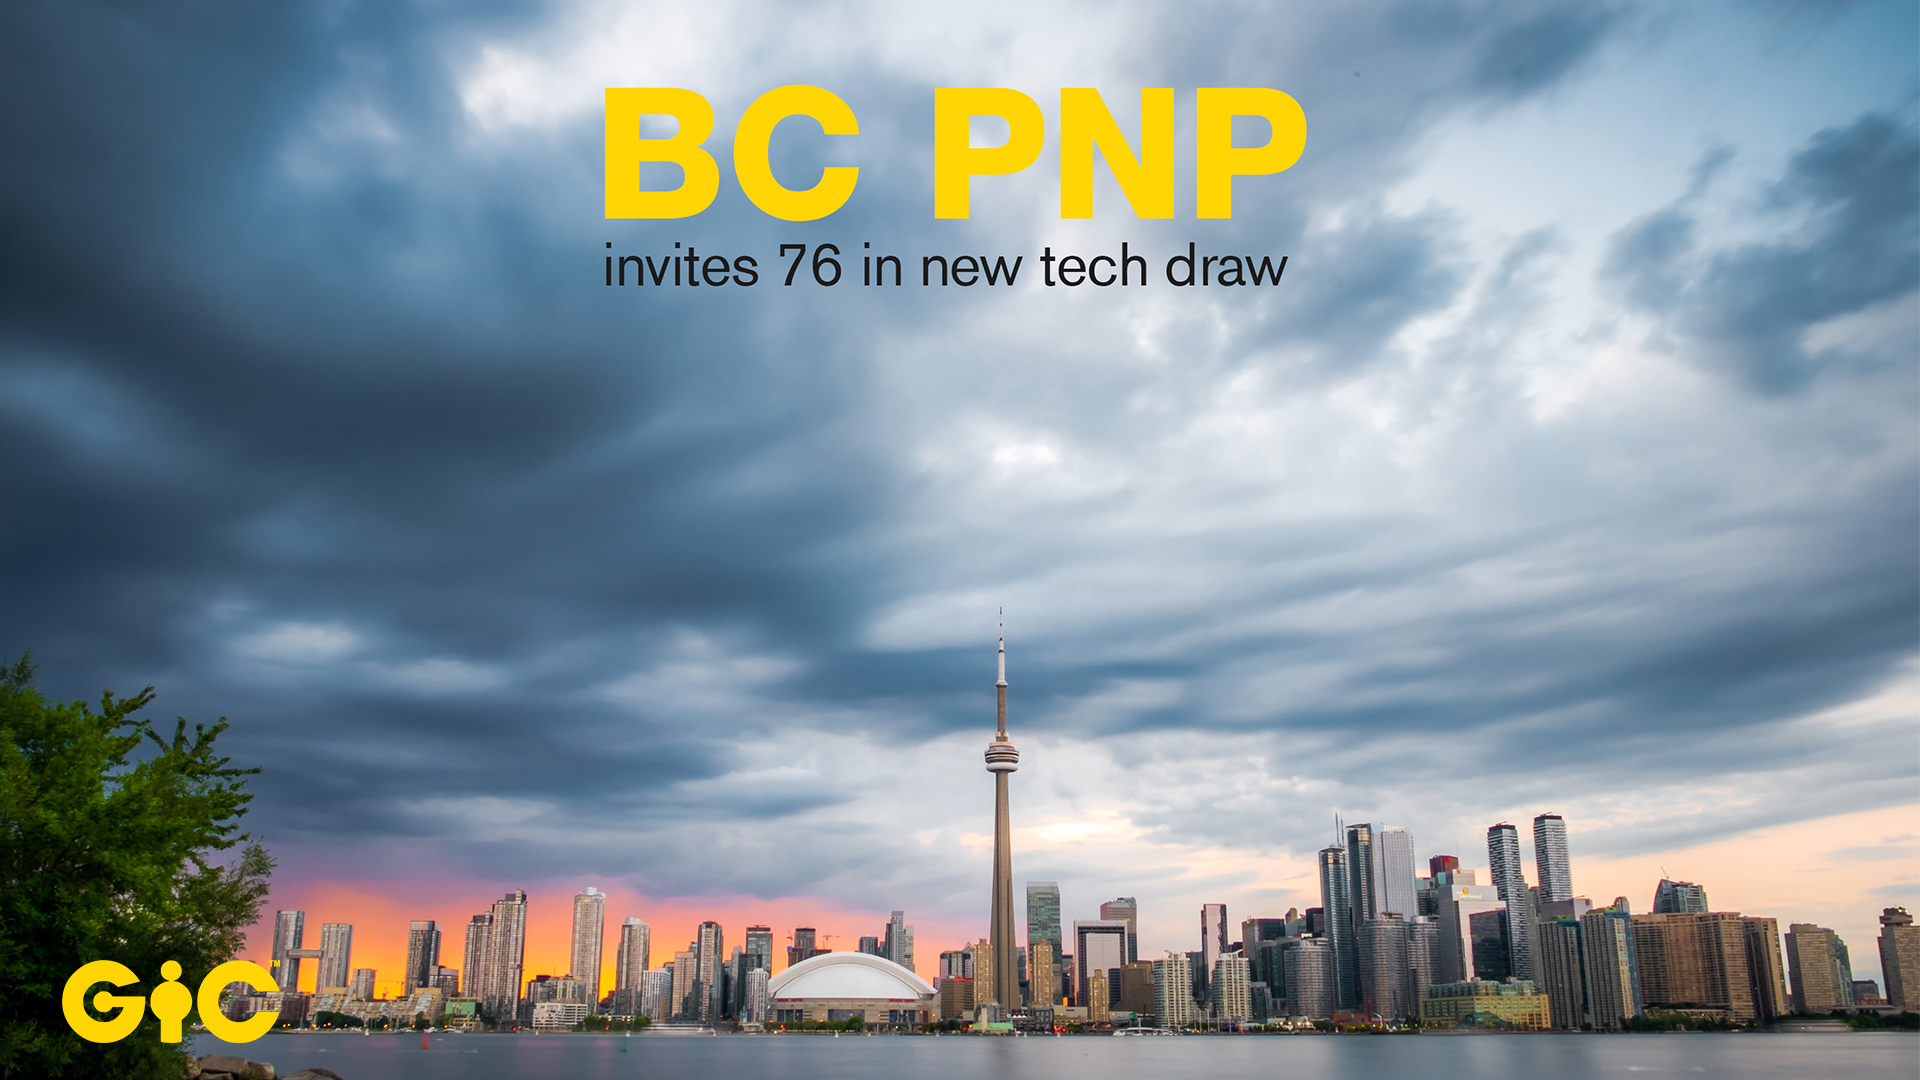 BC PNP invites 76 in new tech draw